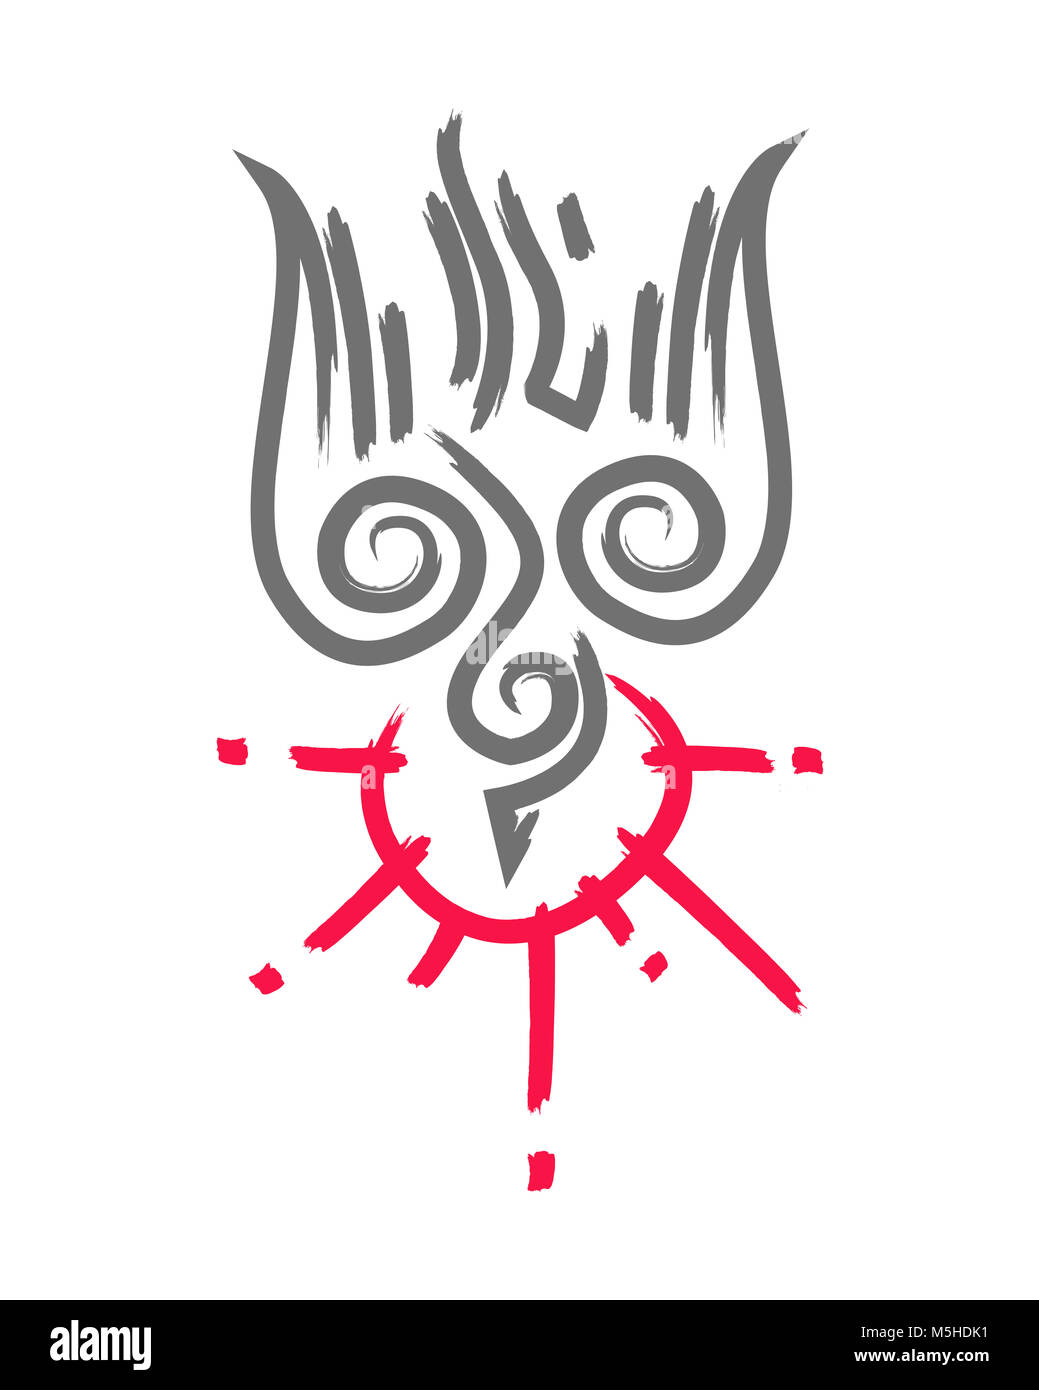 Drawing holy spirit dove symbol stock photos drawing holy spirit hand drawn ink illustration or drawing of a dove bird representing a holy spirit religious symbol biocorpaavc